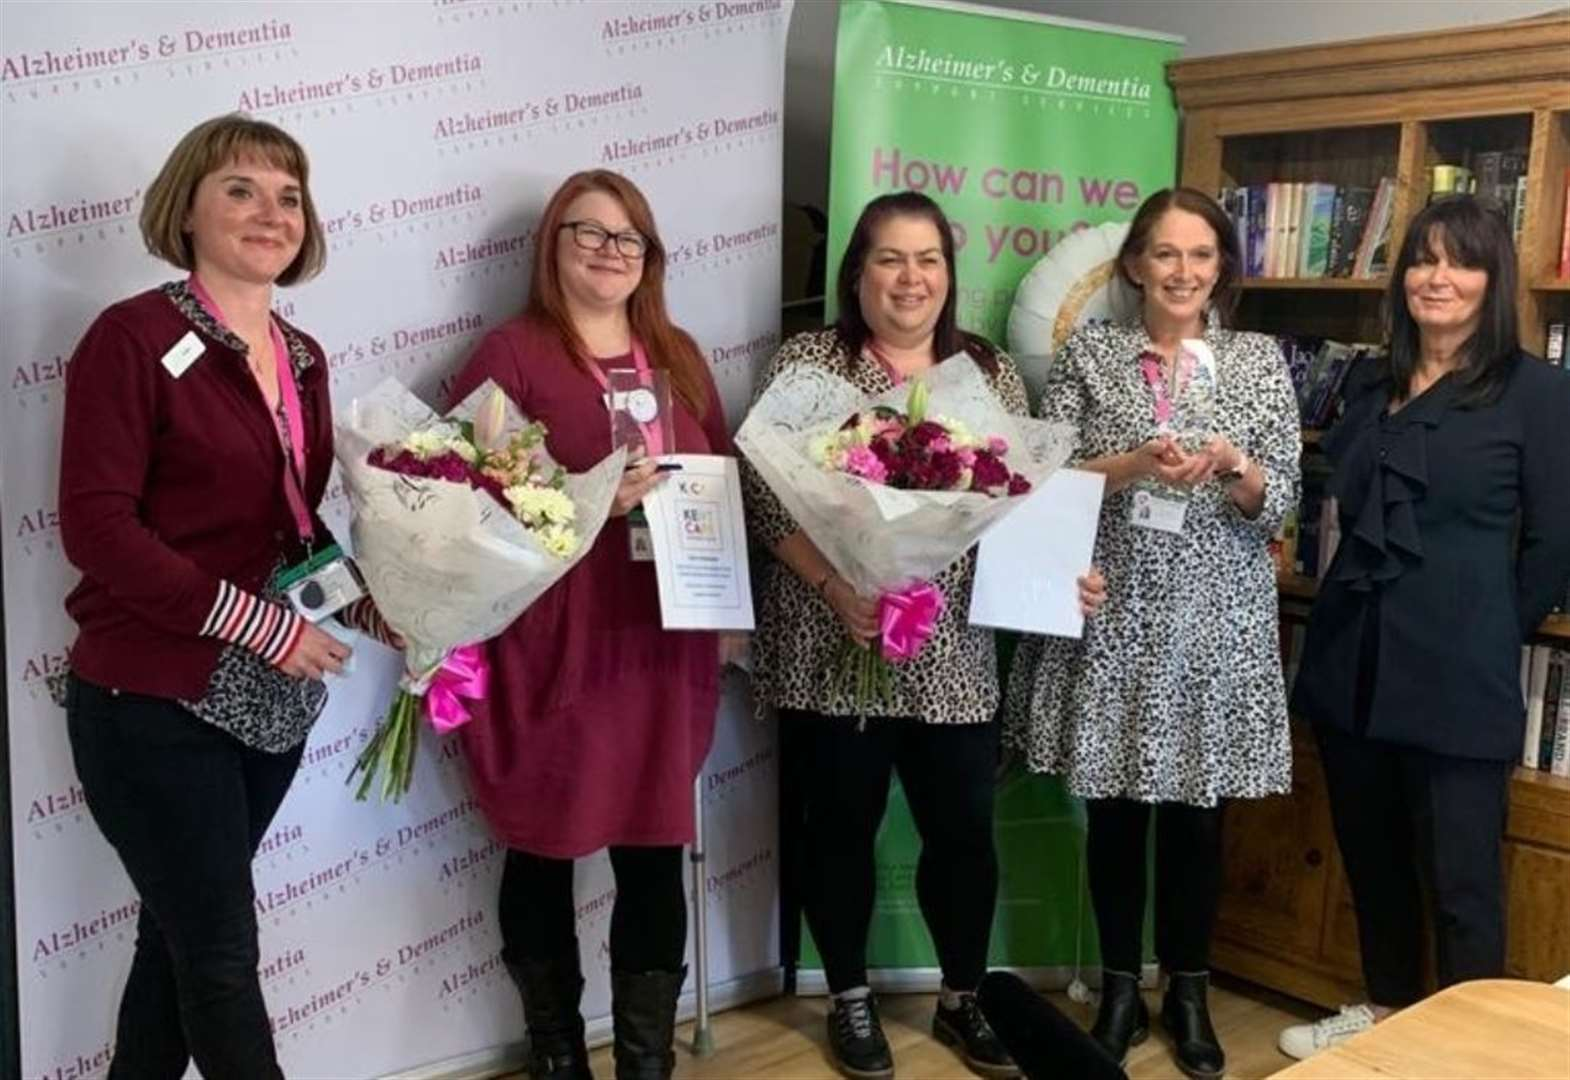 Charity recognised for dementia work